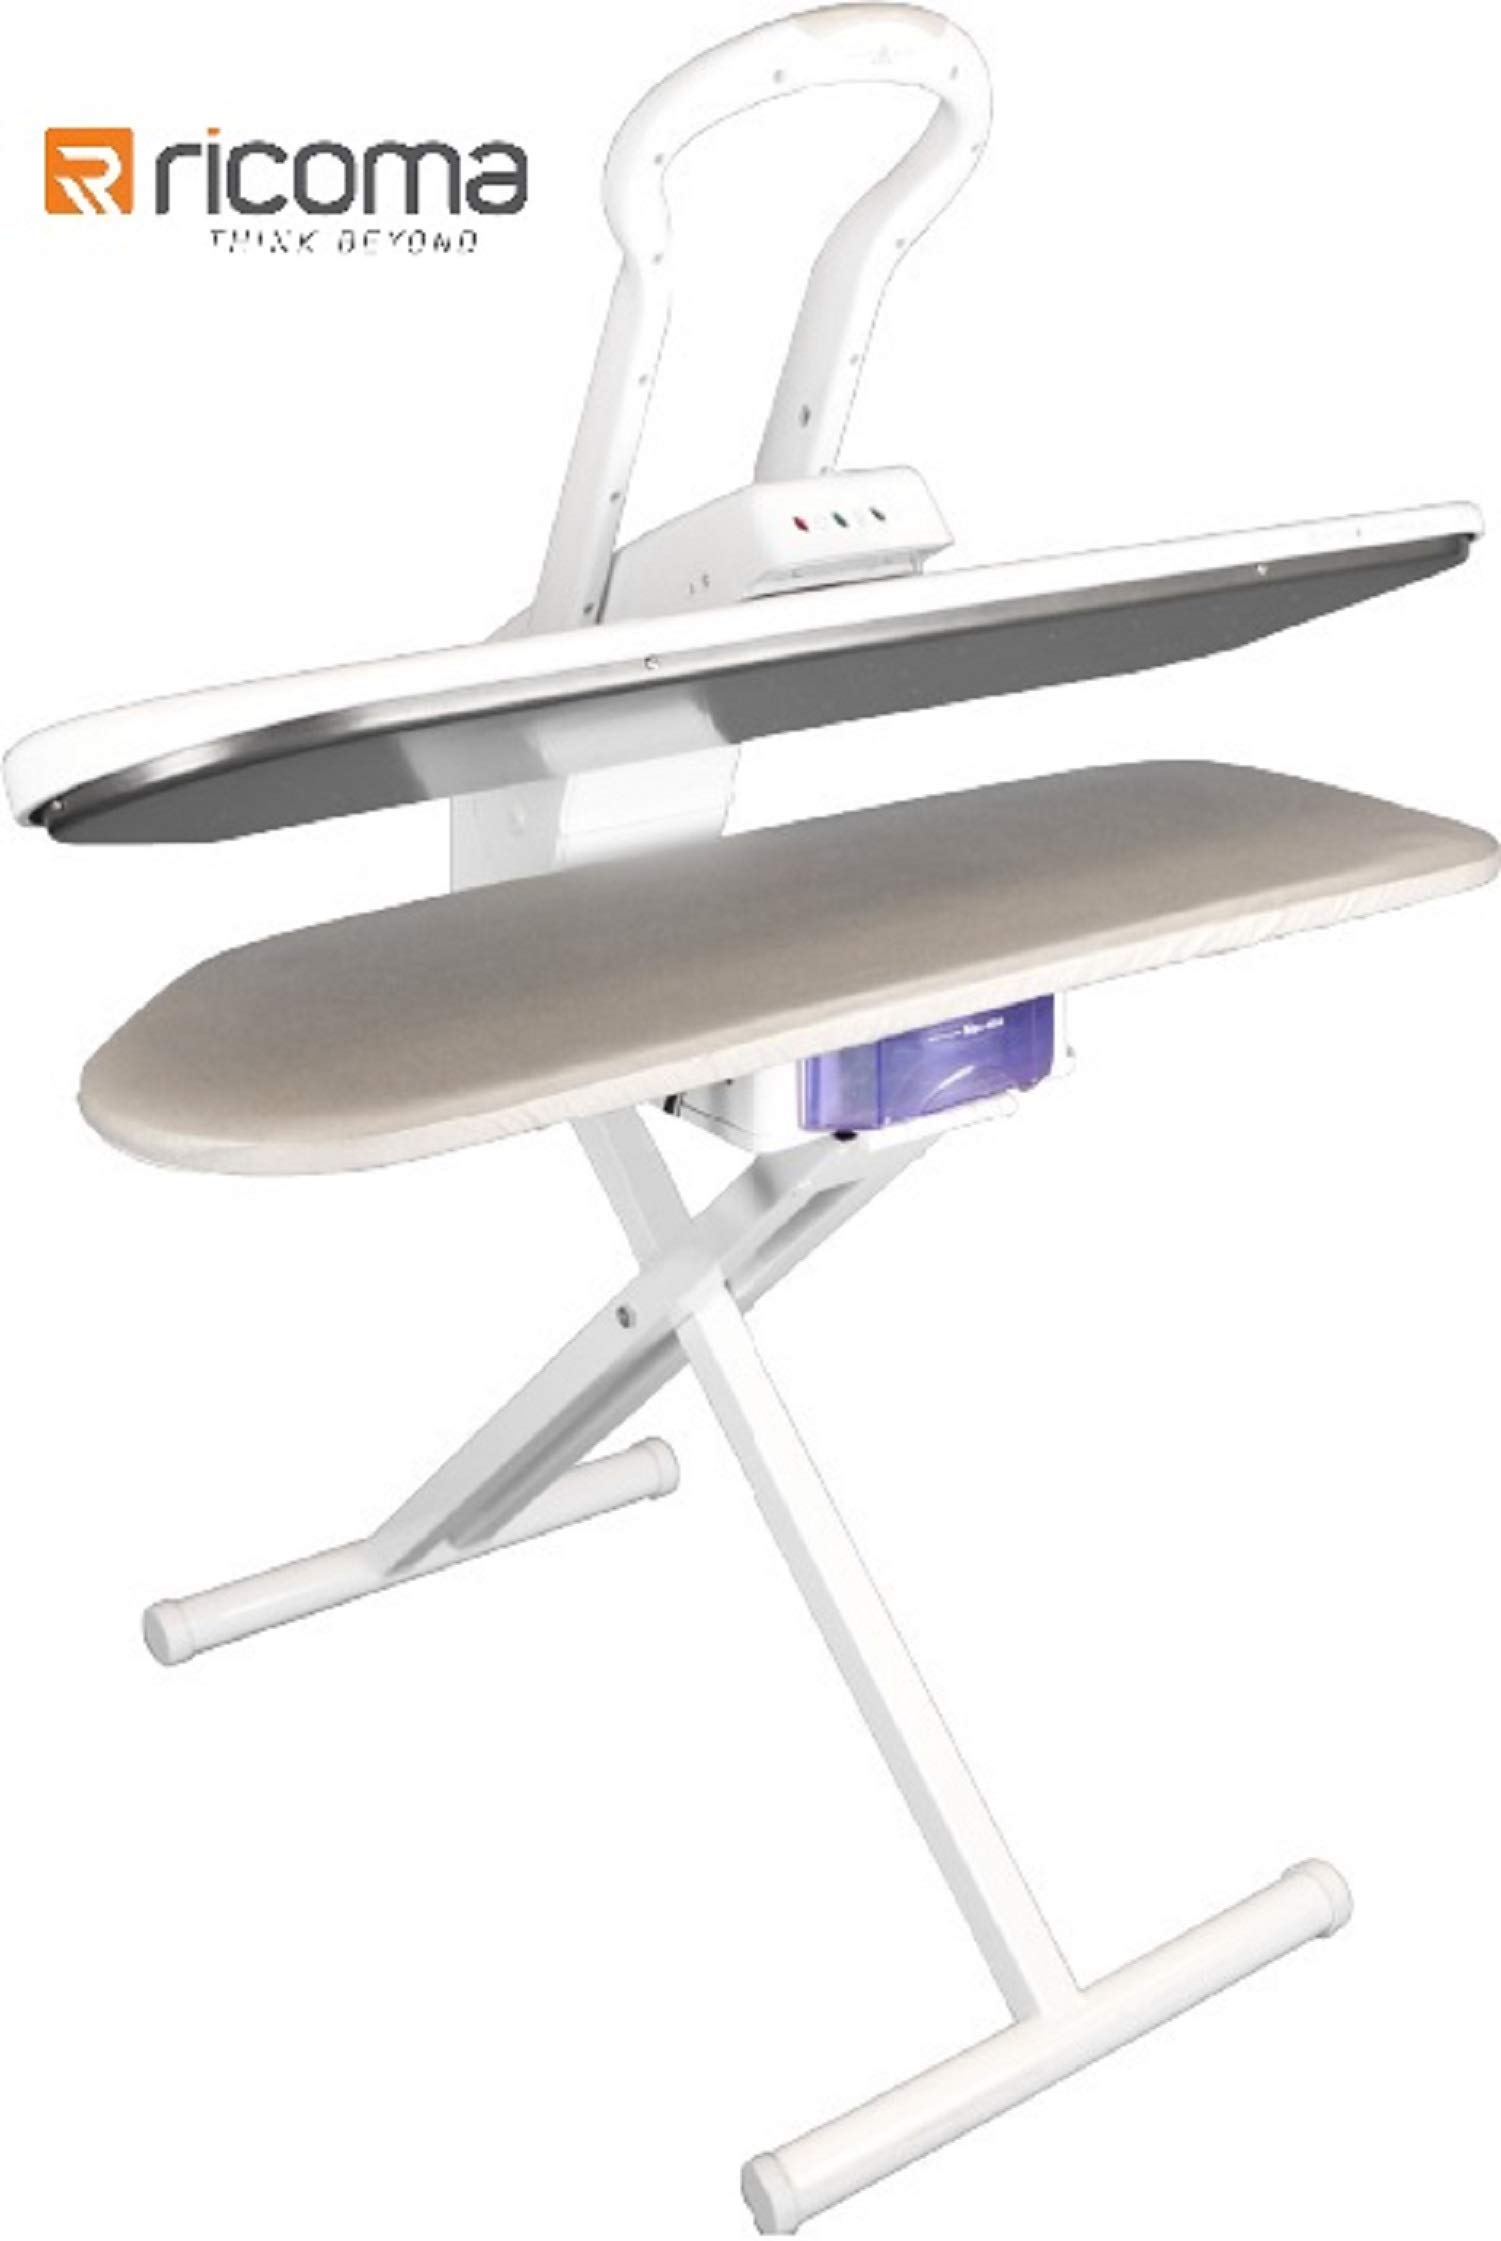 RiCOMA Ironing Steam Press 34x11 for Dry or Steam Iron Pressing, 1350 Watts, Includes 30'' Stand. Ultra XL Ironing Surface